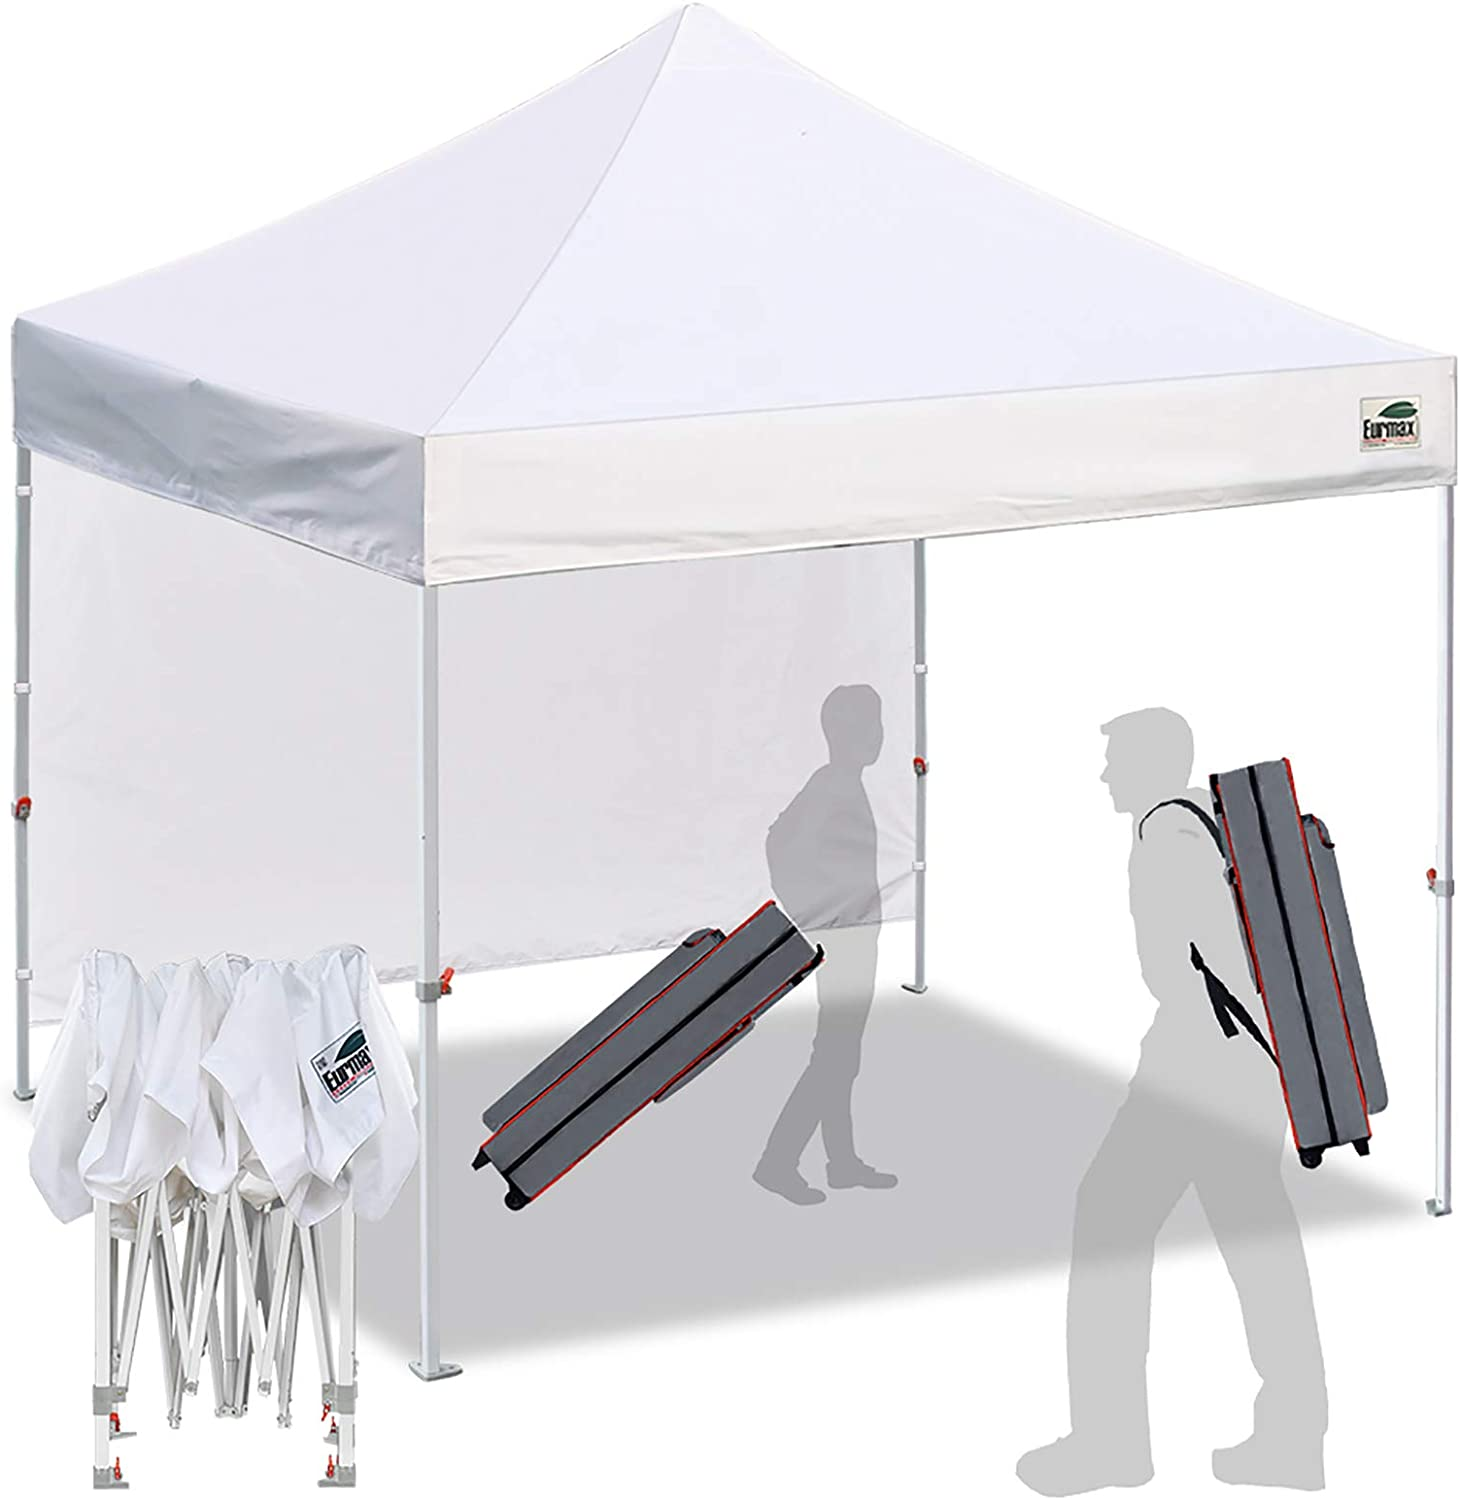 Eurmax Smart 10'x10' Pop up Canopy Tent Outdoor Festival Tailgate Event Vendor Craft Show Canopy Instant Shelter with 1 Removable Sunwall and Backpack Roller Bag